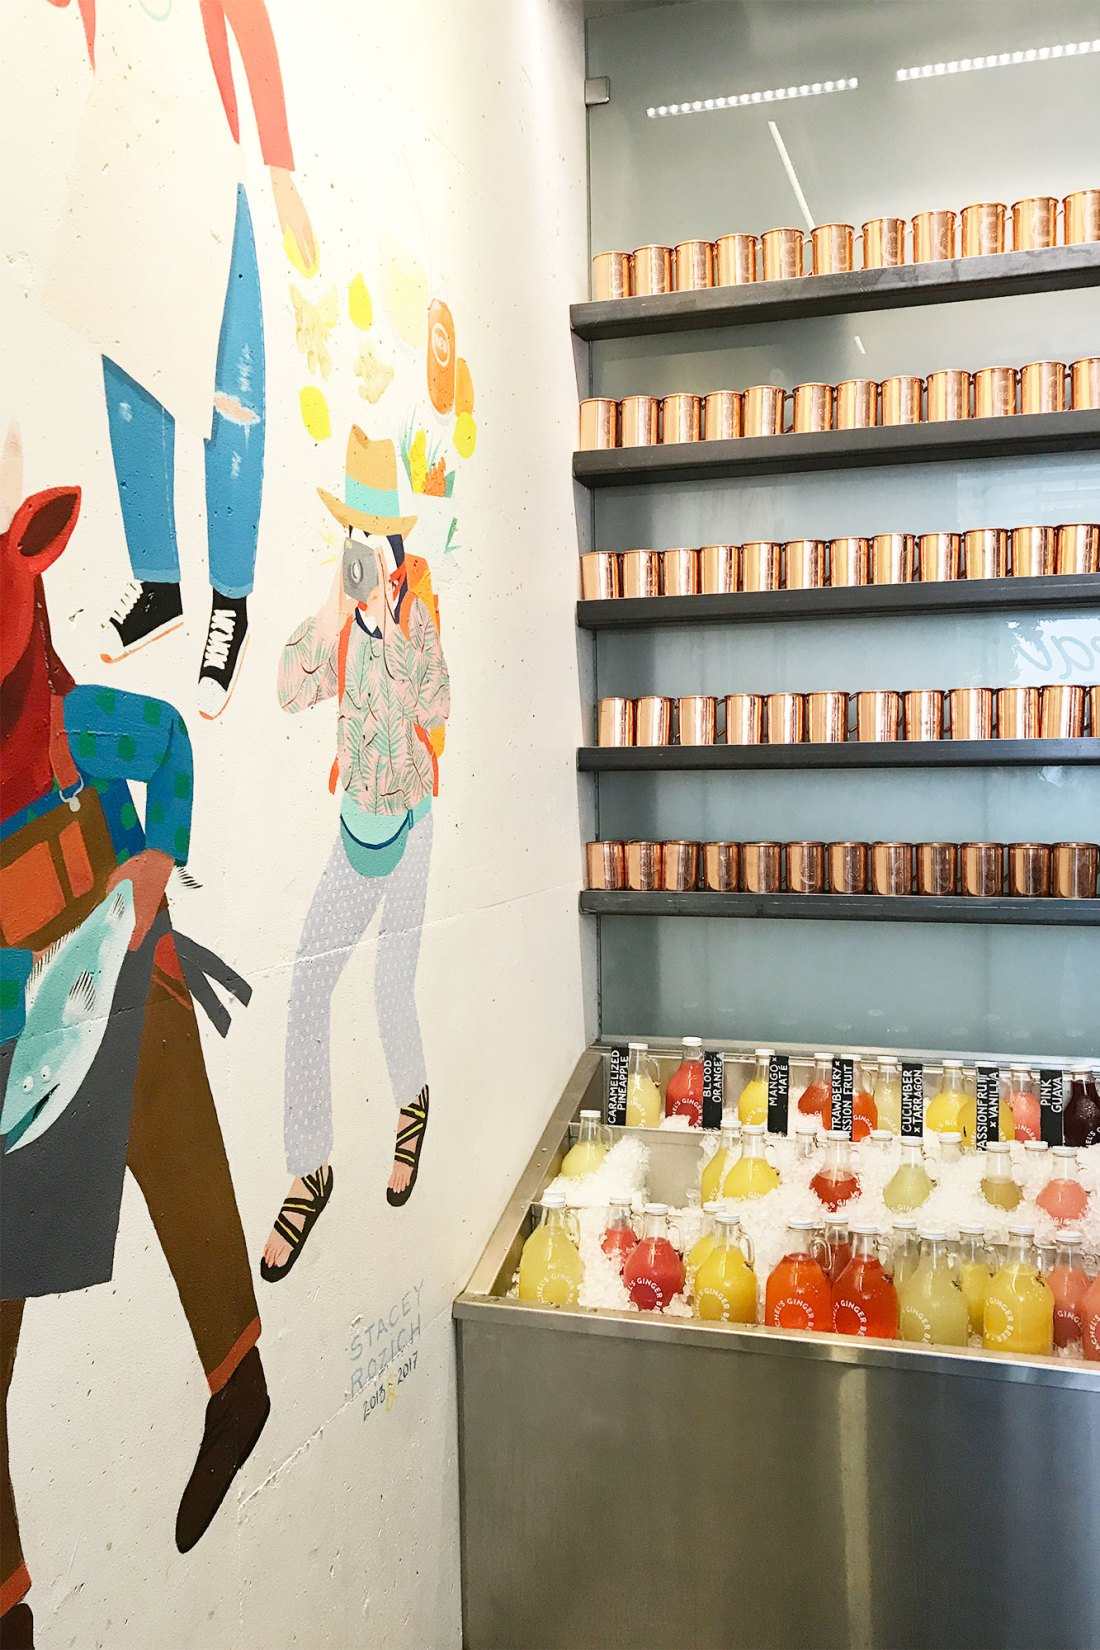 Colorful mural next to display of drink product